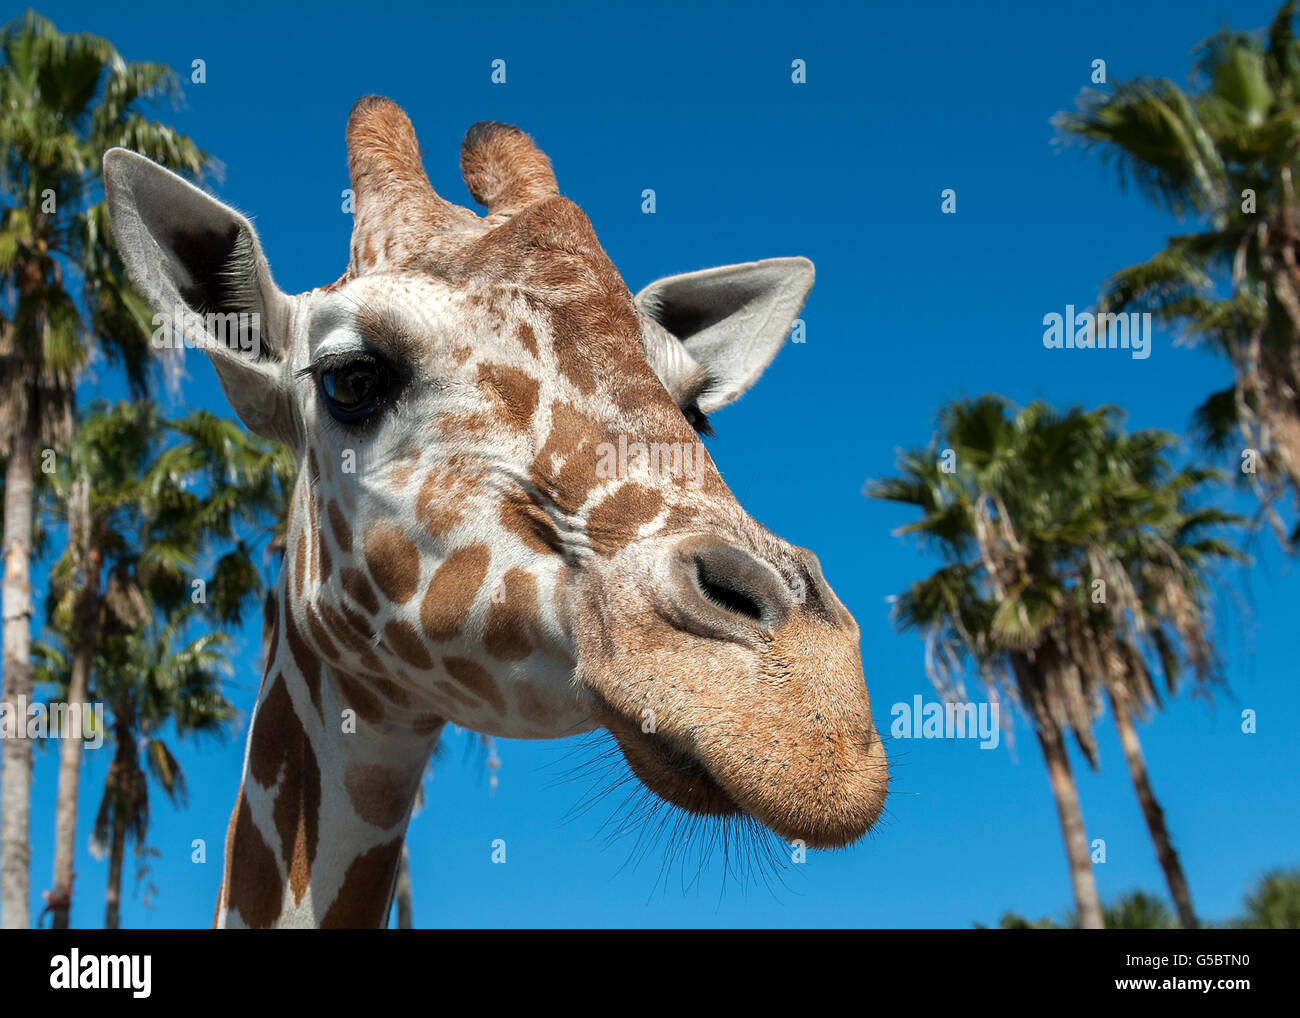 Close up of Giraffe head - Stock Image